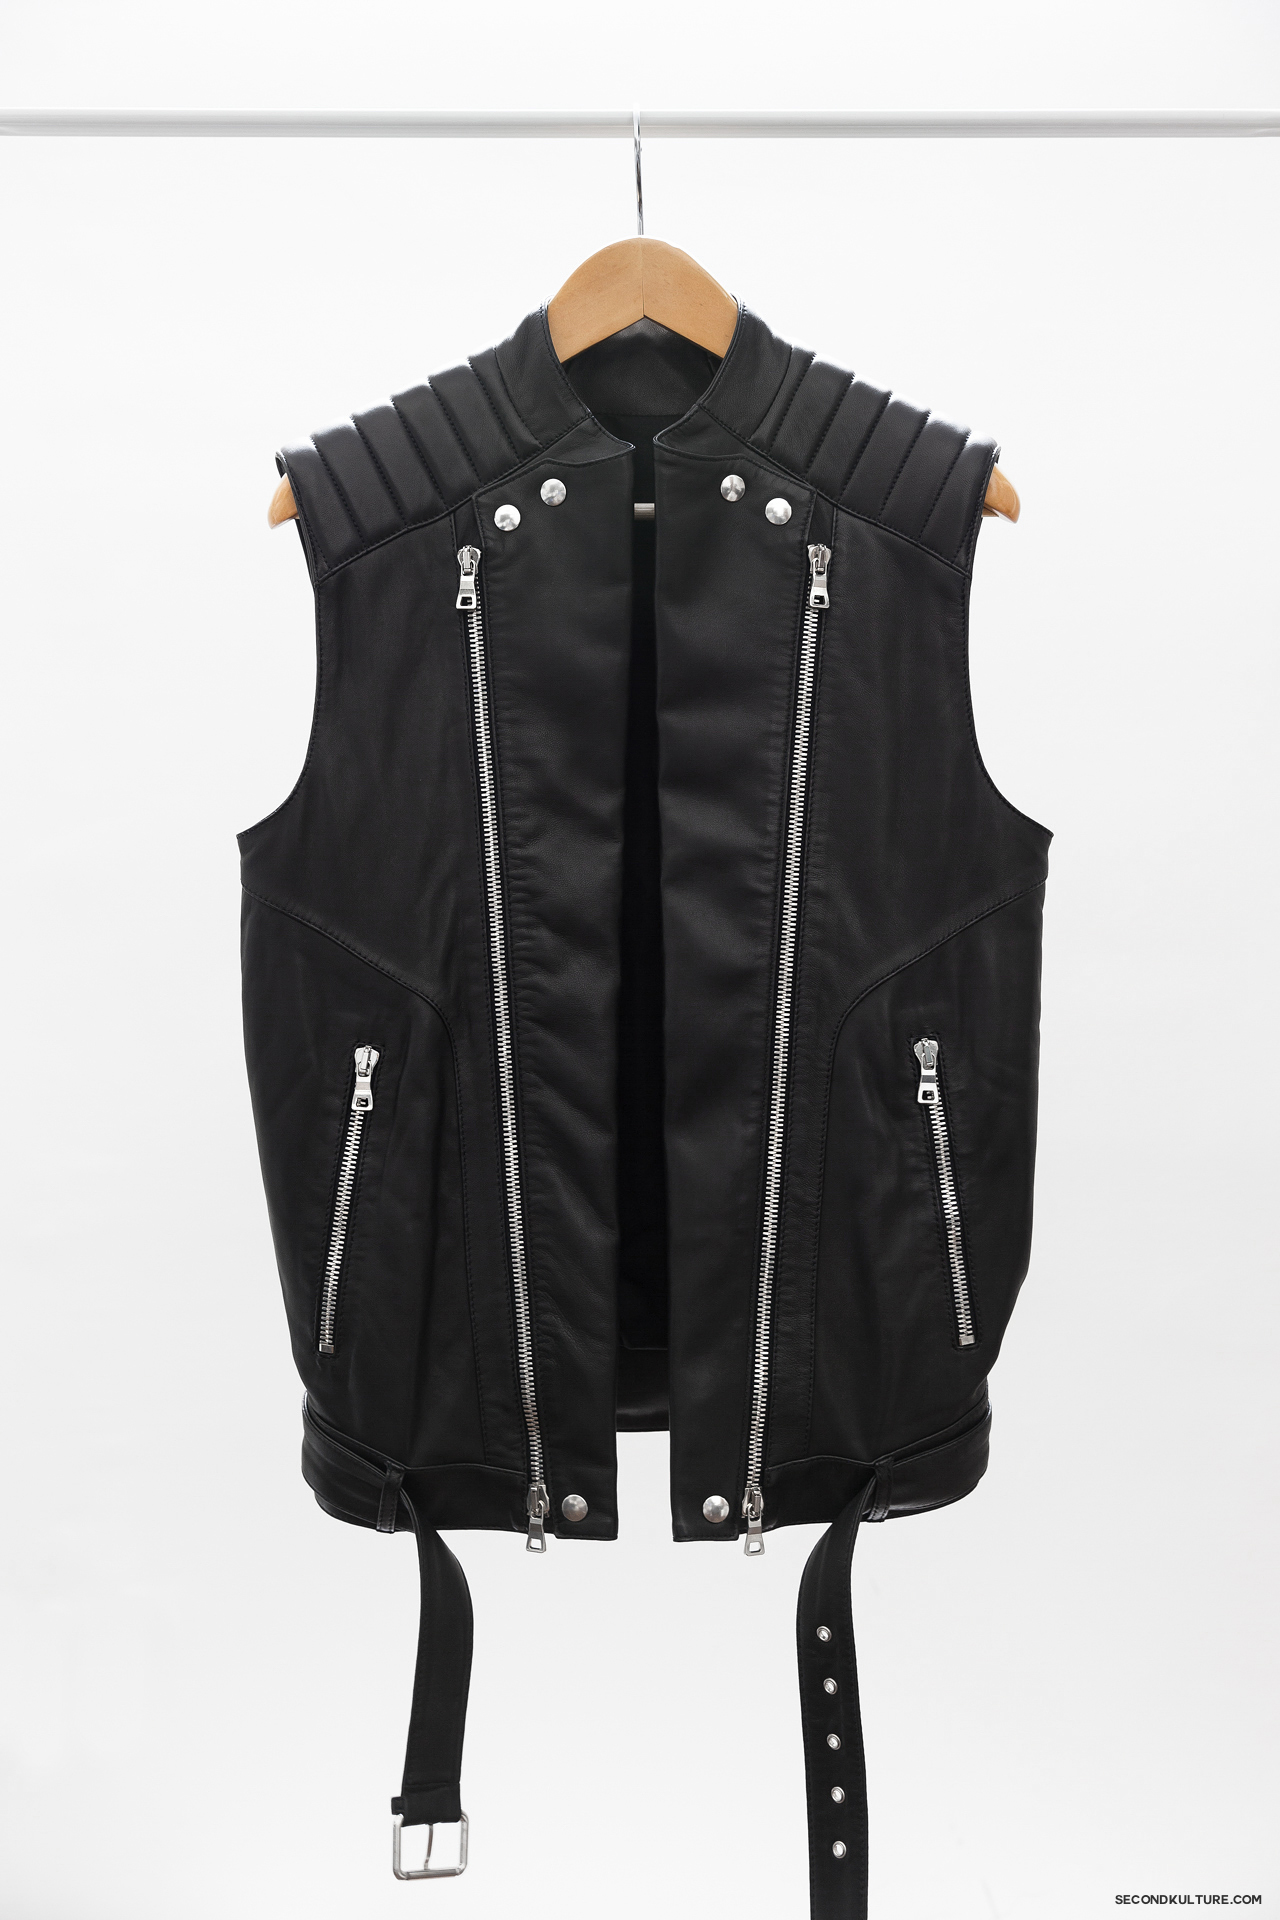 Balmain-Black-Zipped-Biker-Leather-Gilet-Vest-Sleeveless-Jacket-1